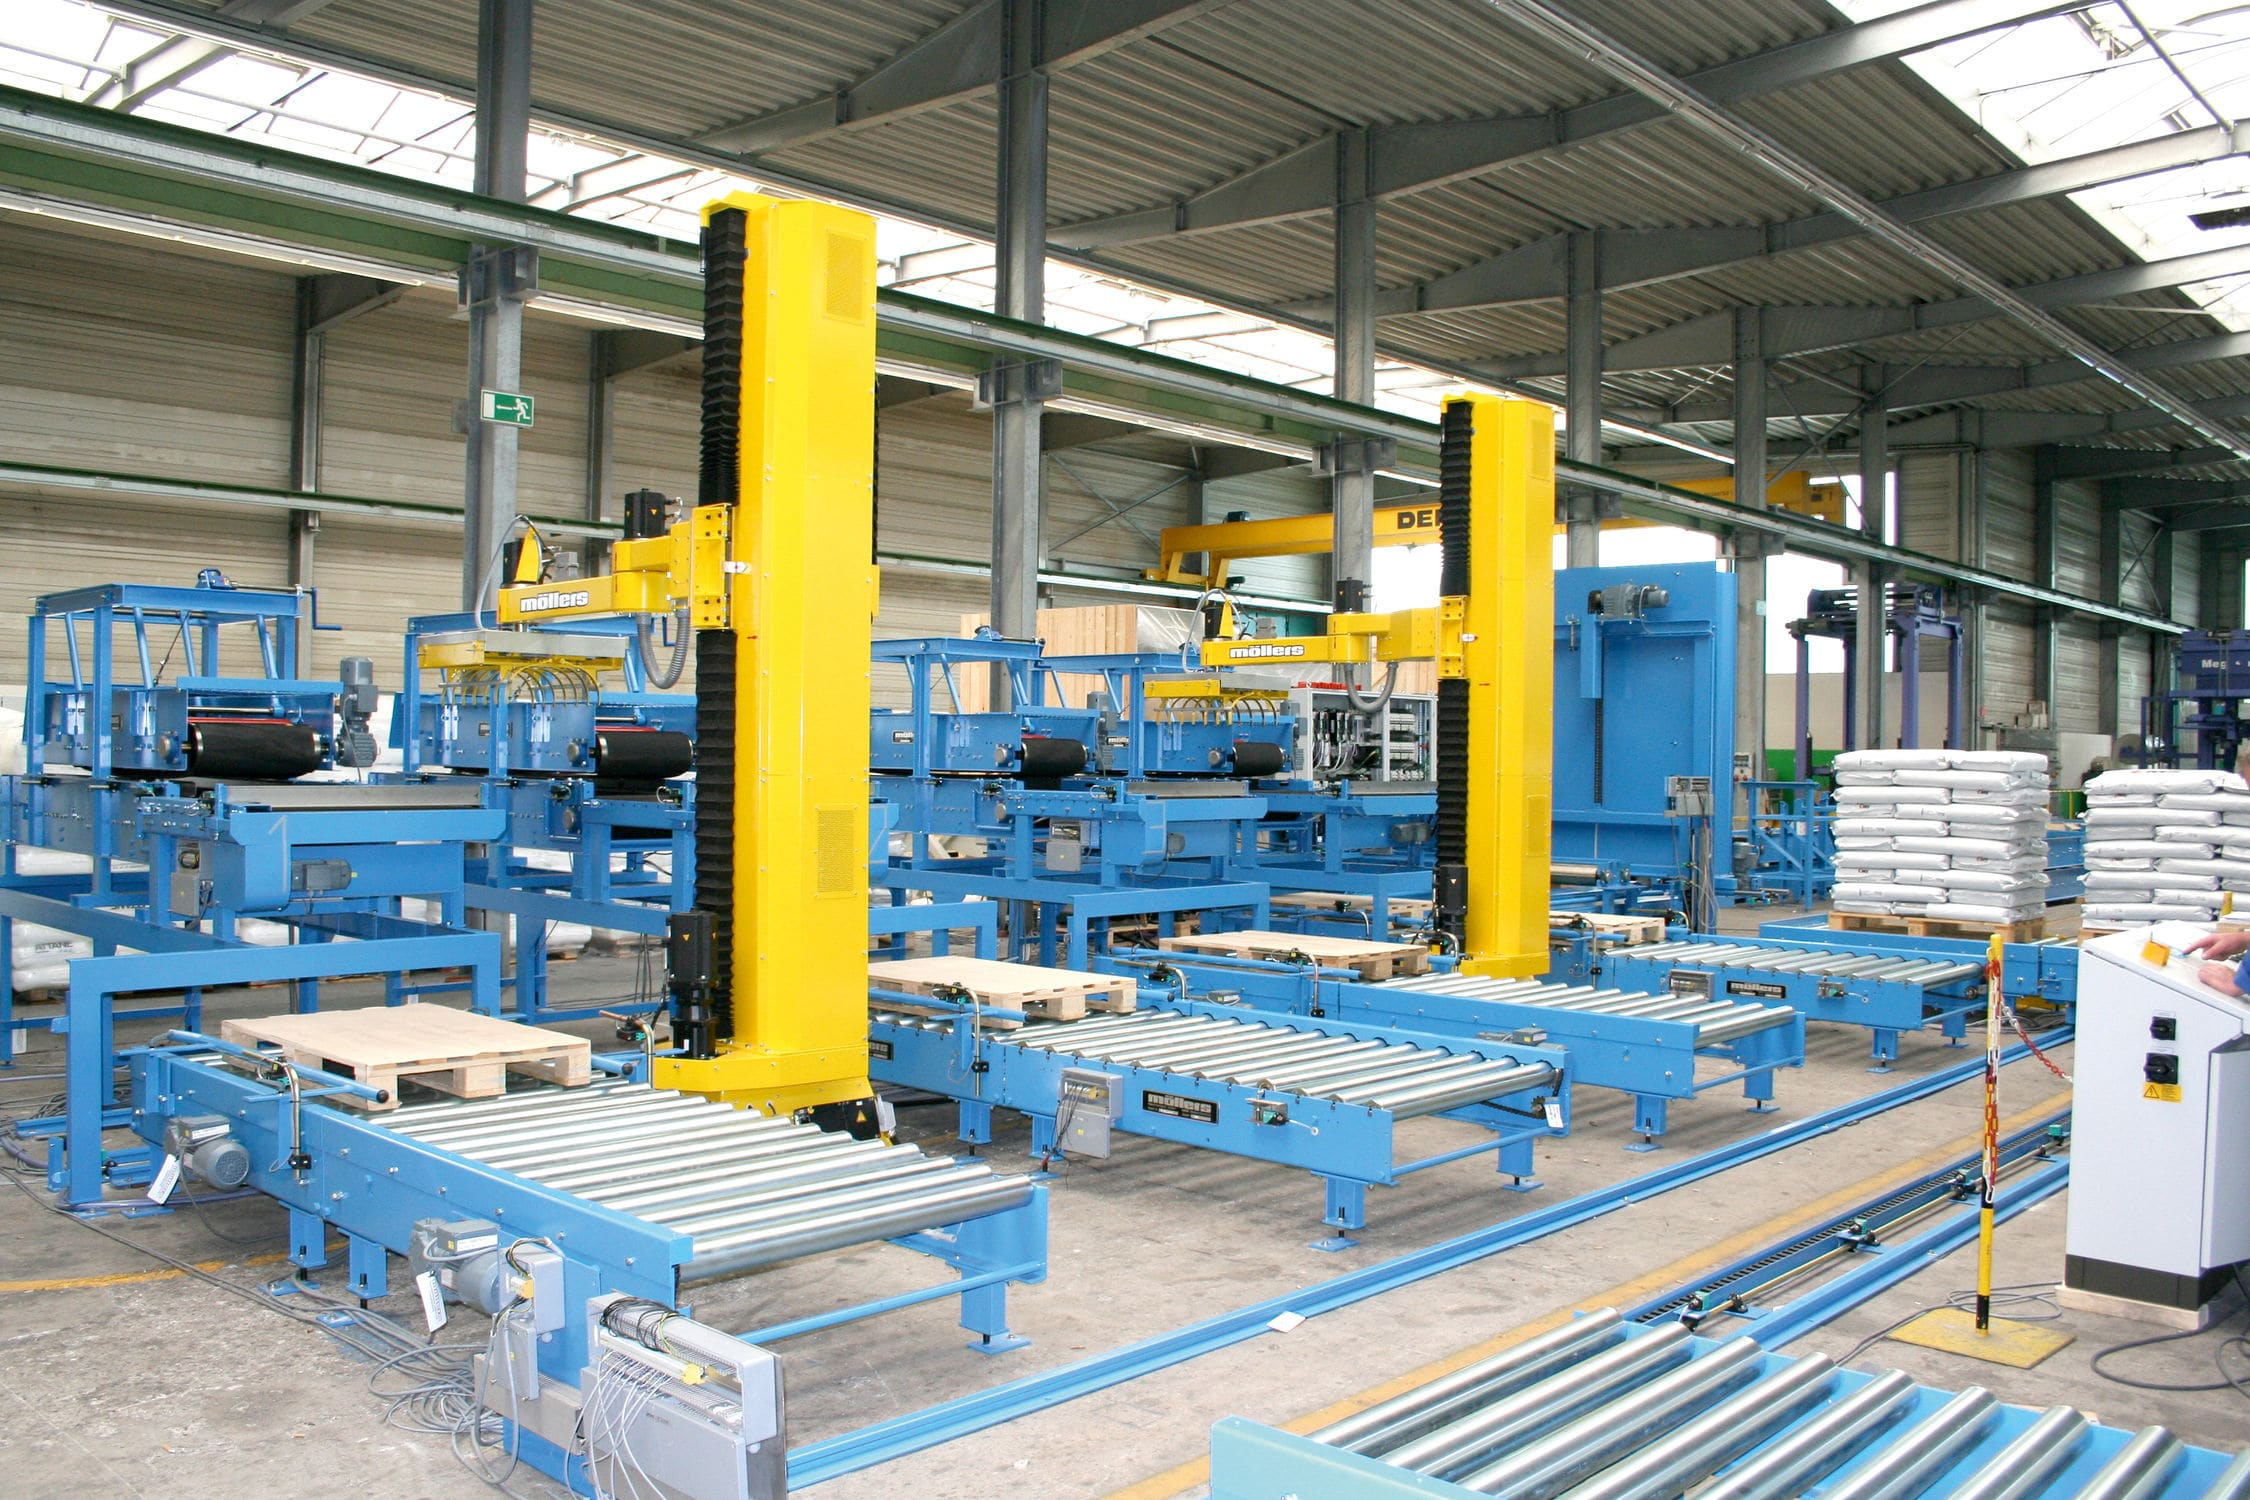 Robotic palletizer and depalletizer / Cartesian